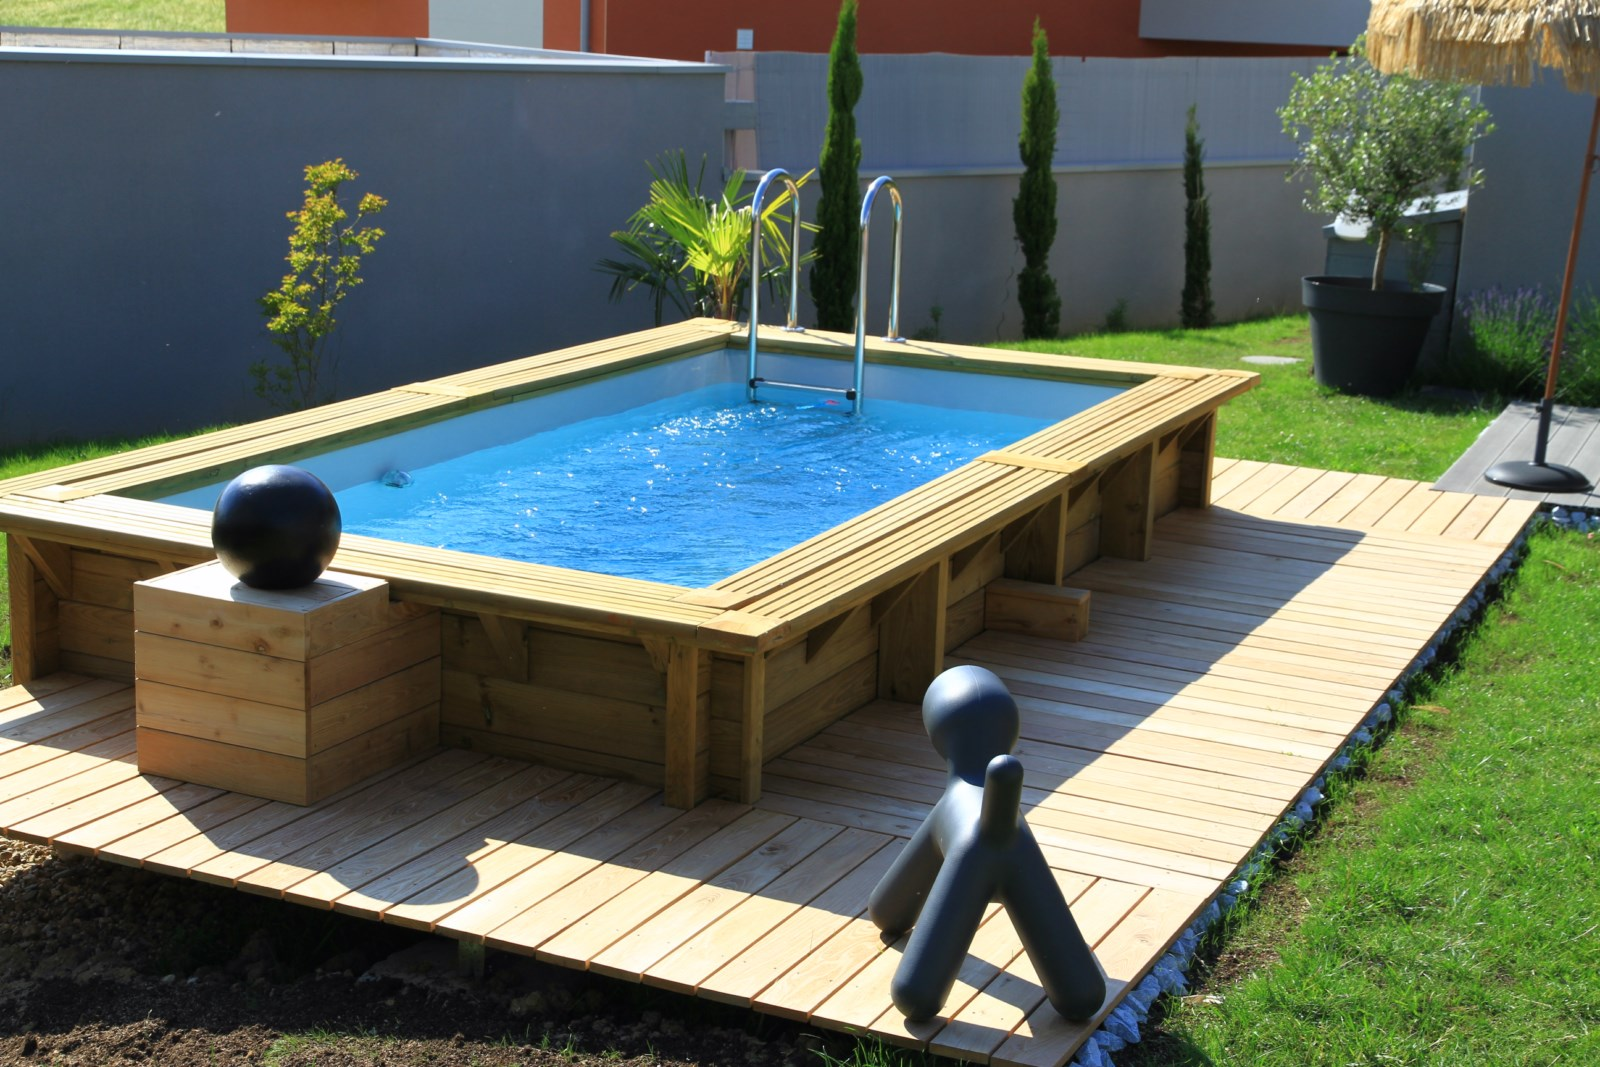 construction piscine b ton arm pas cher ouest lyonnais les jardins de l 39 ouest. Black Bedroom Furniture Sets. Home Design Ideas